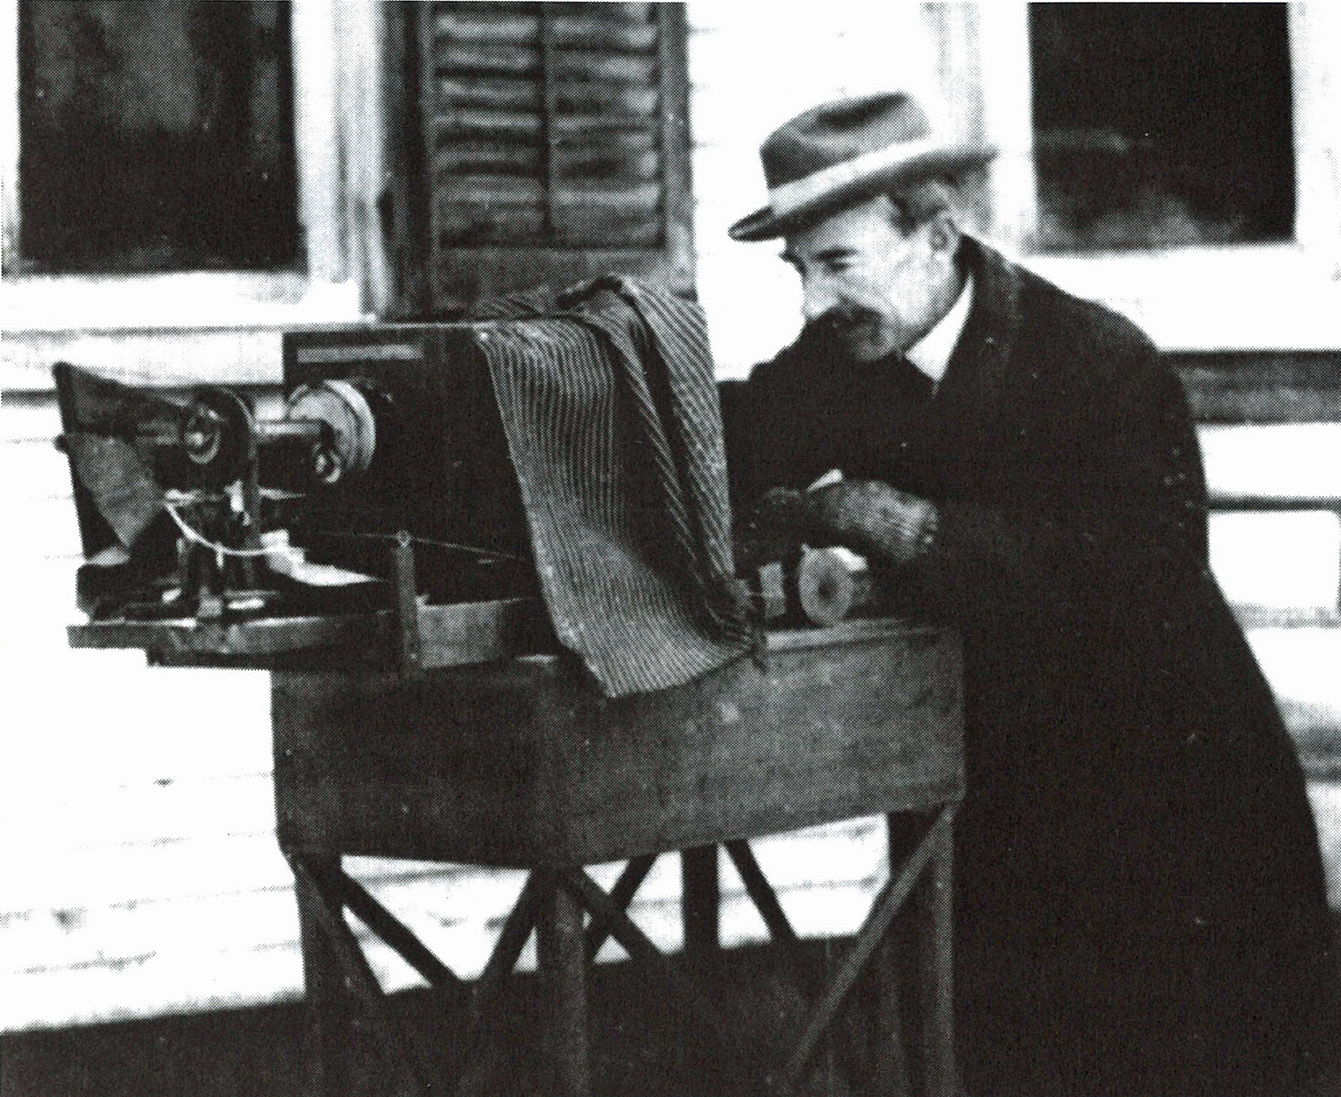 Historic photograph of man outside with a large camera.